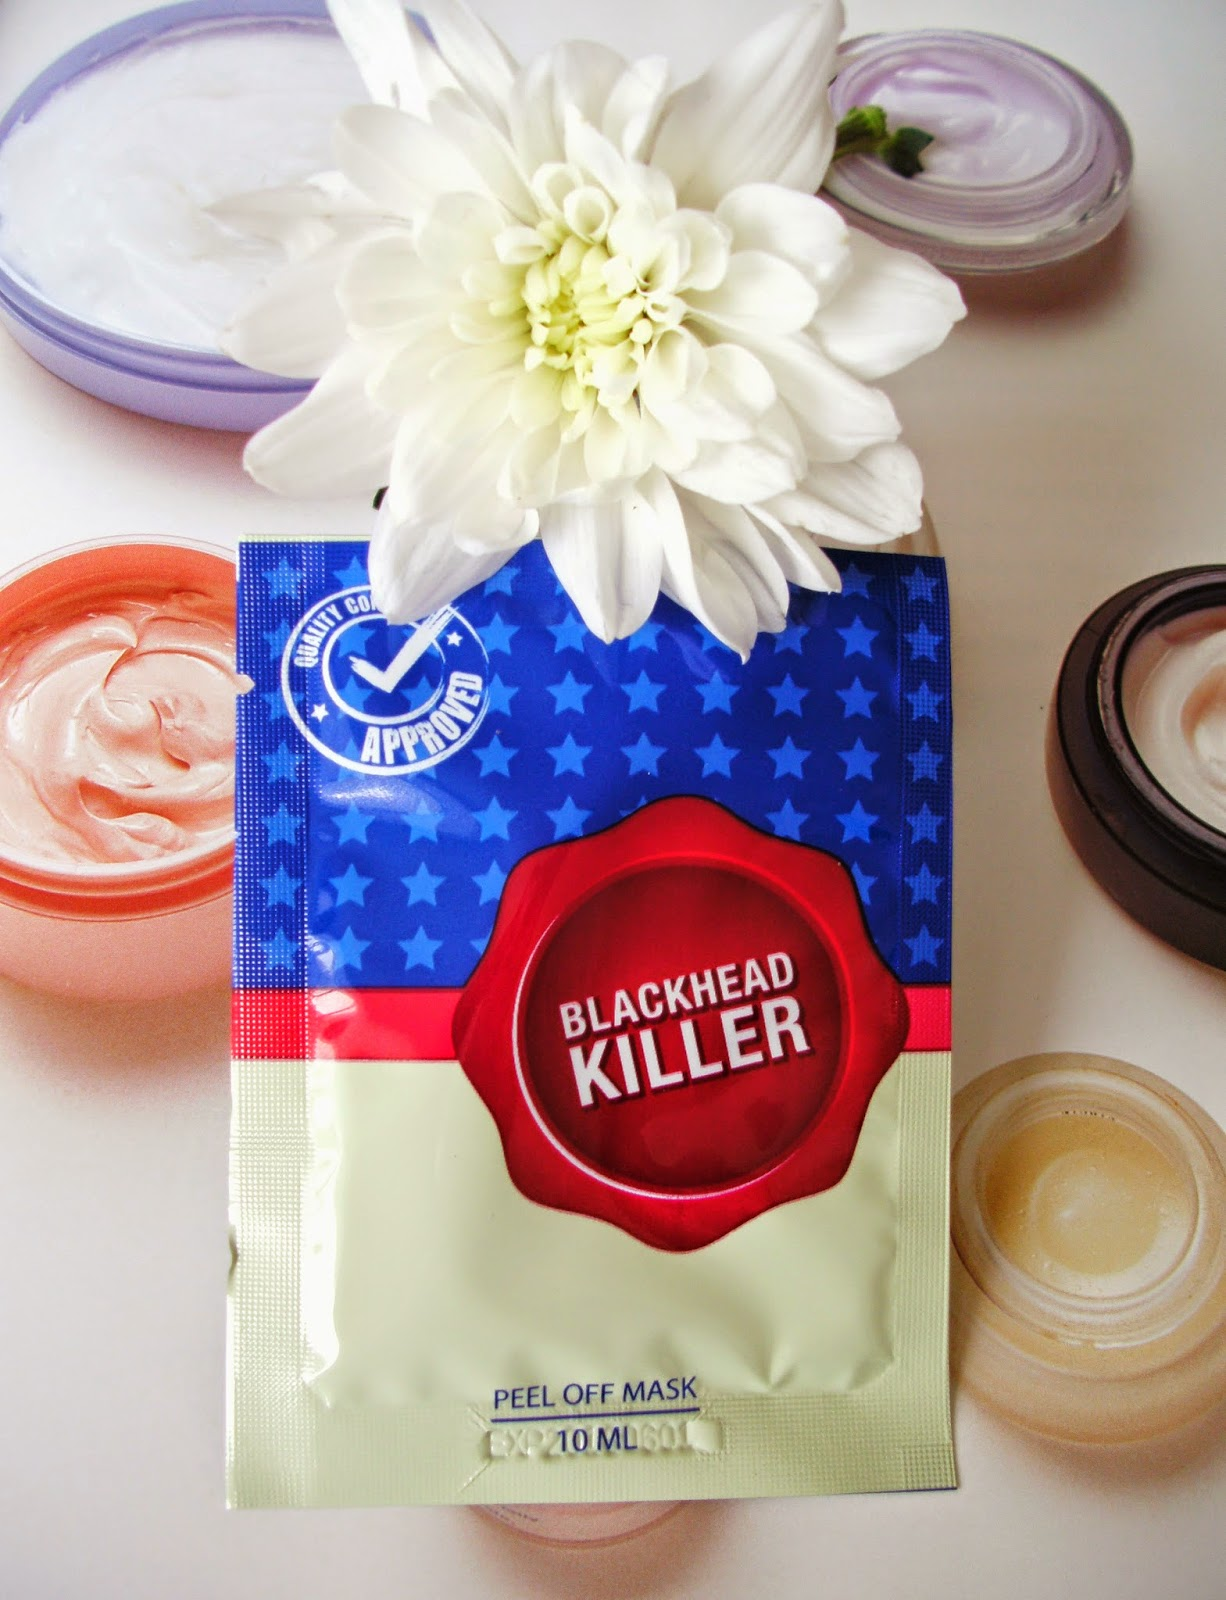 Black Head Killer Face Mask 5 Pack - £14.95 - Available from StyleLux UK